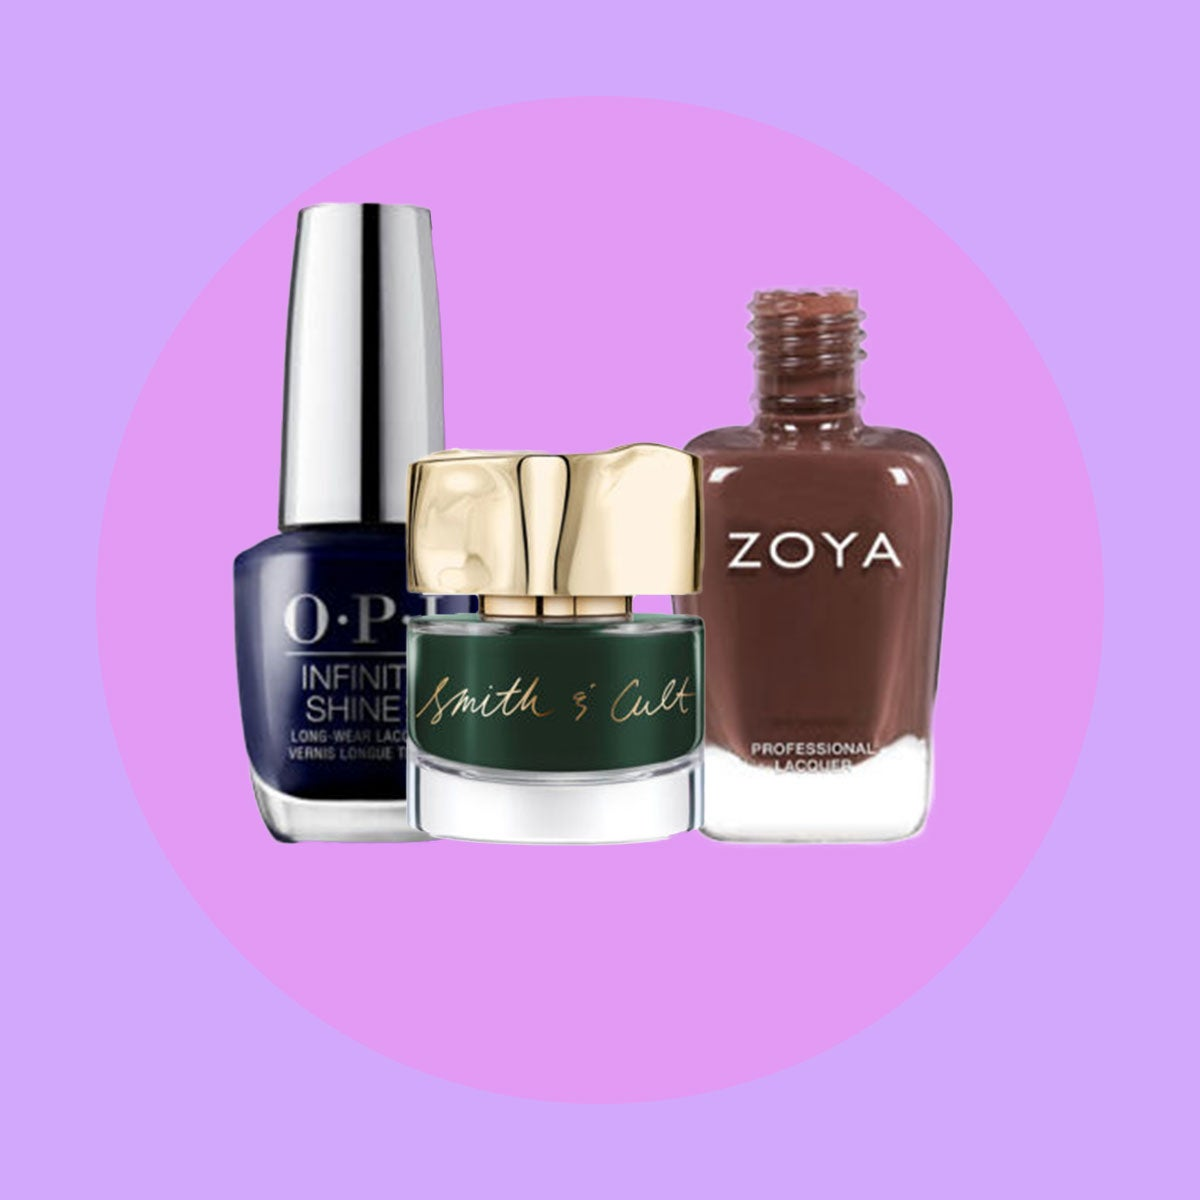 7 Fall Tastic Nail Polish Colors You Need To Grab Now